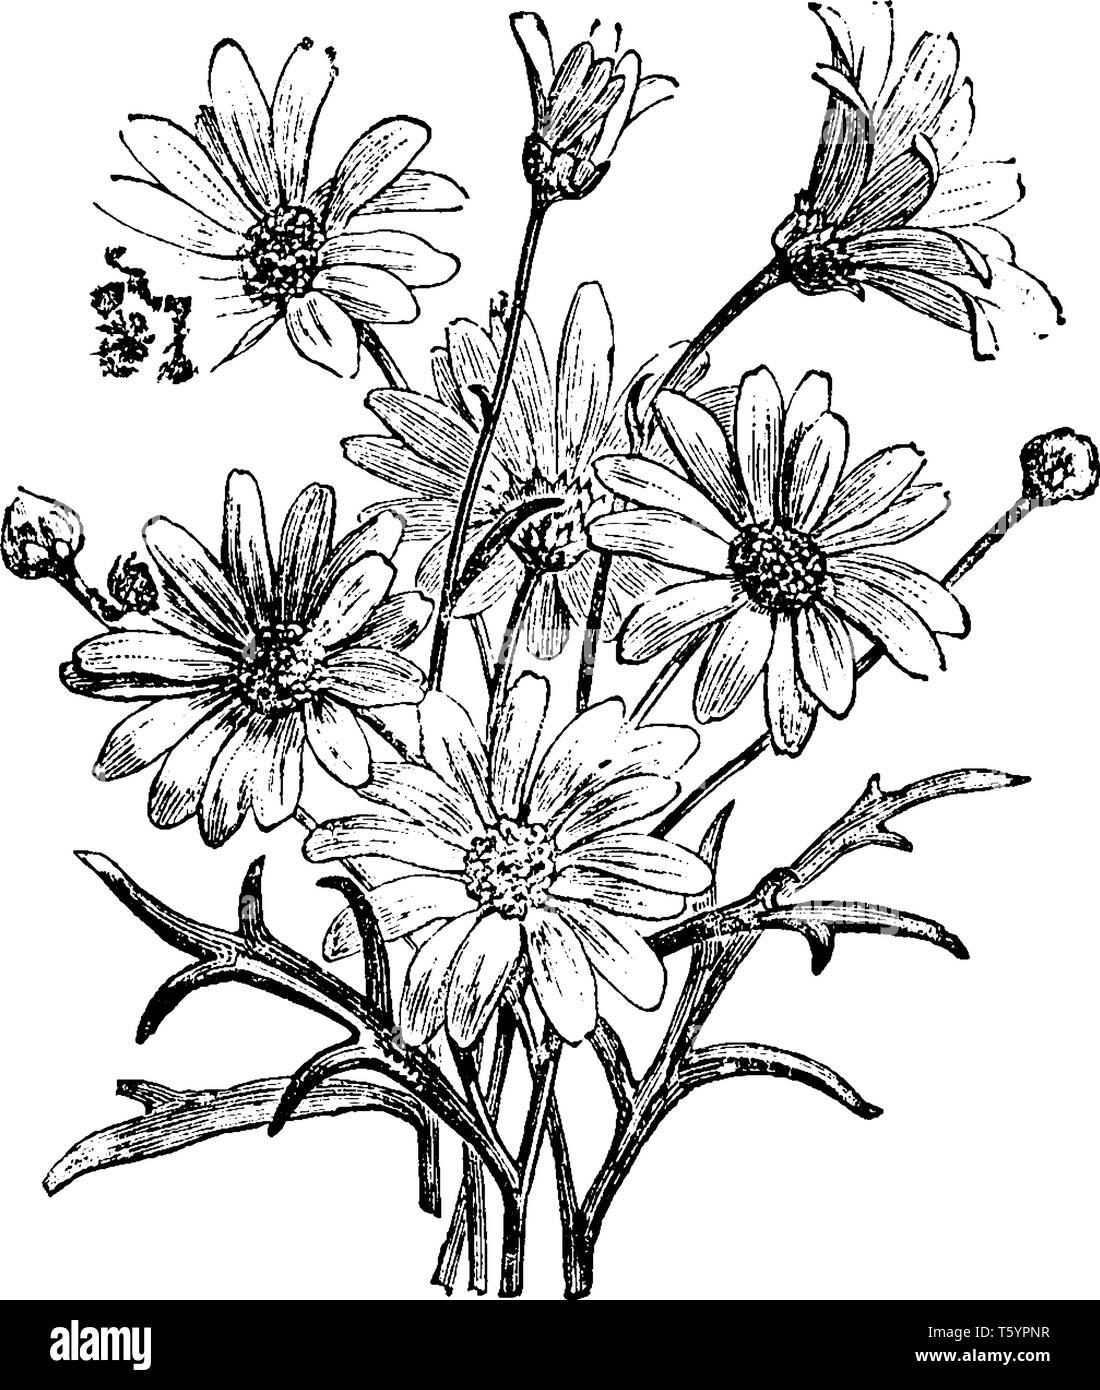 Pyrethrum is a perennial herb. It has grey hairy leaves that are fine and deeply divided. Flowers are daisy like with a yellow center and white ray pe - Stock Image